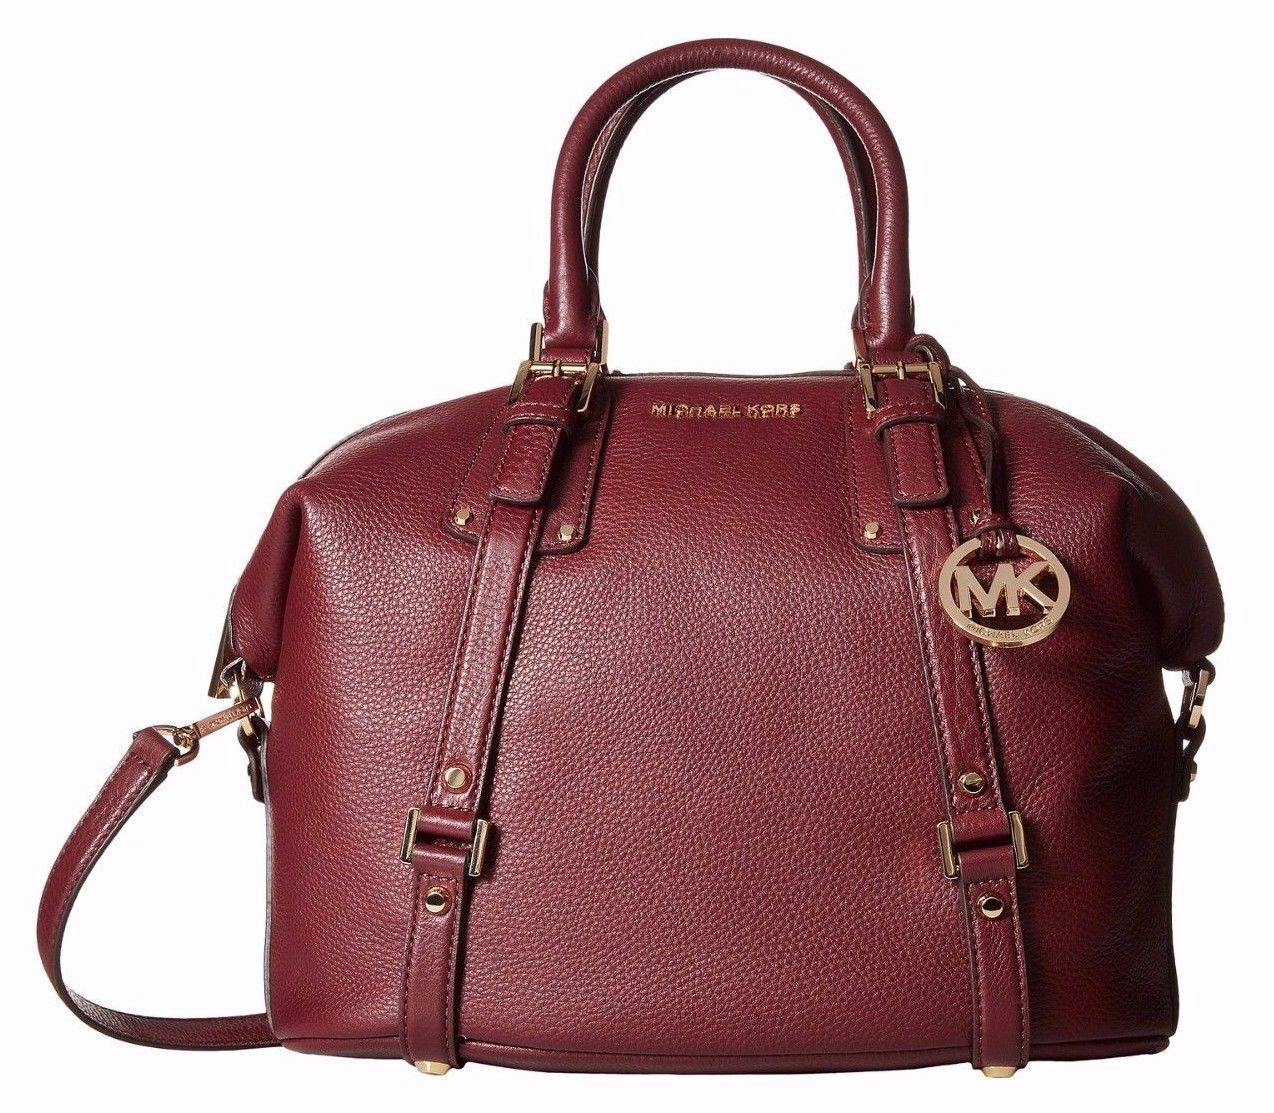 NWT Michael Kors Bedford Belted Large Satchel Leather 30F5GBFS3L Merlot $428